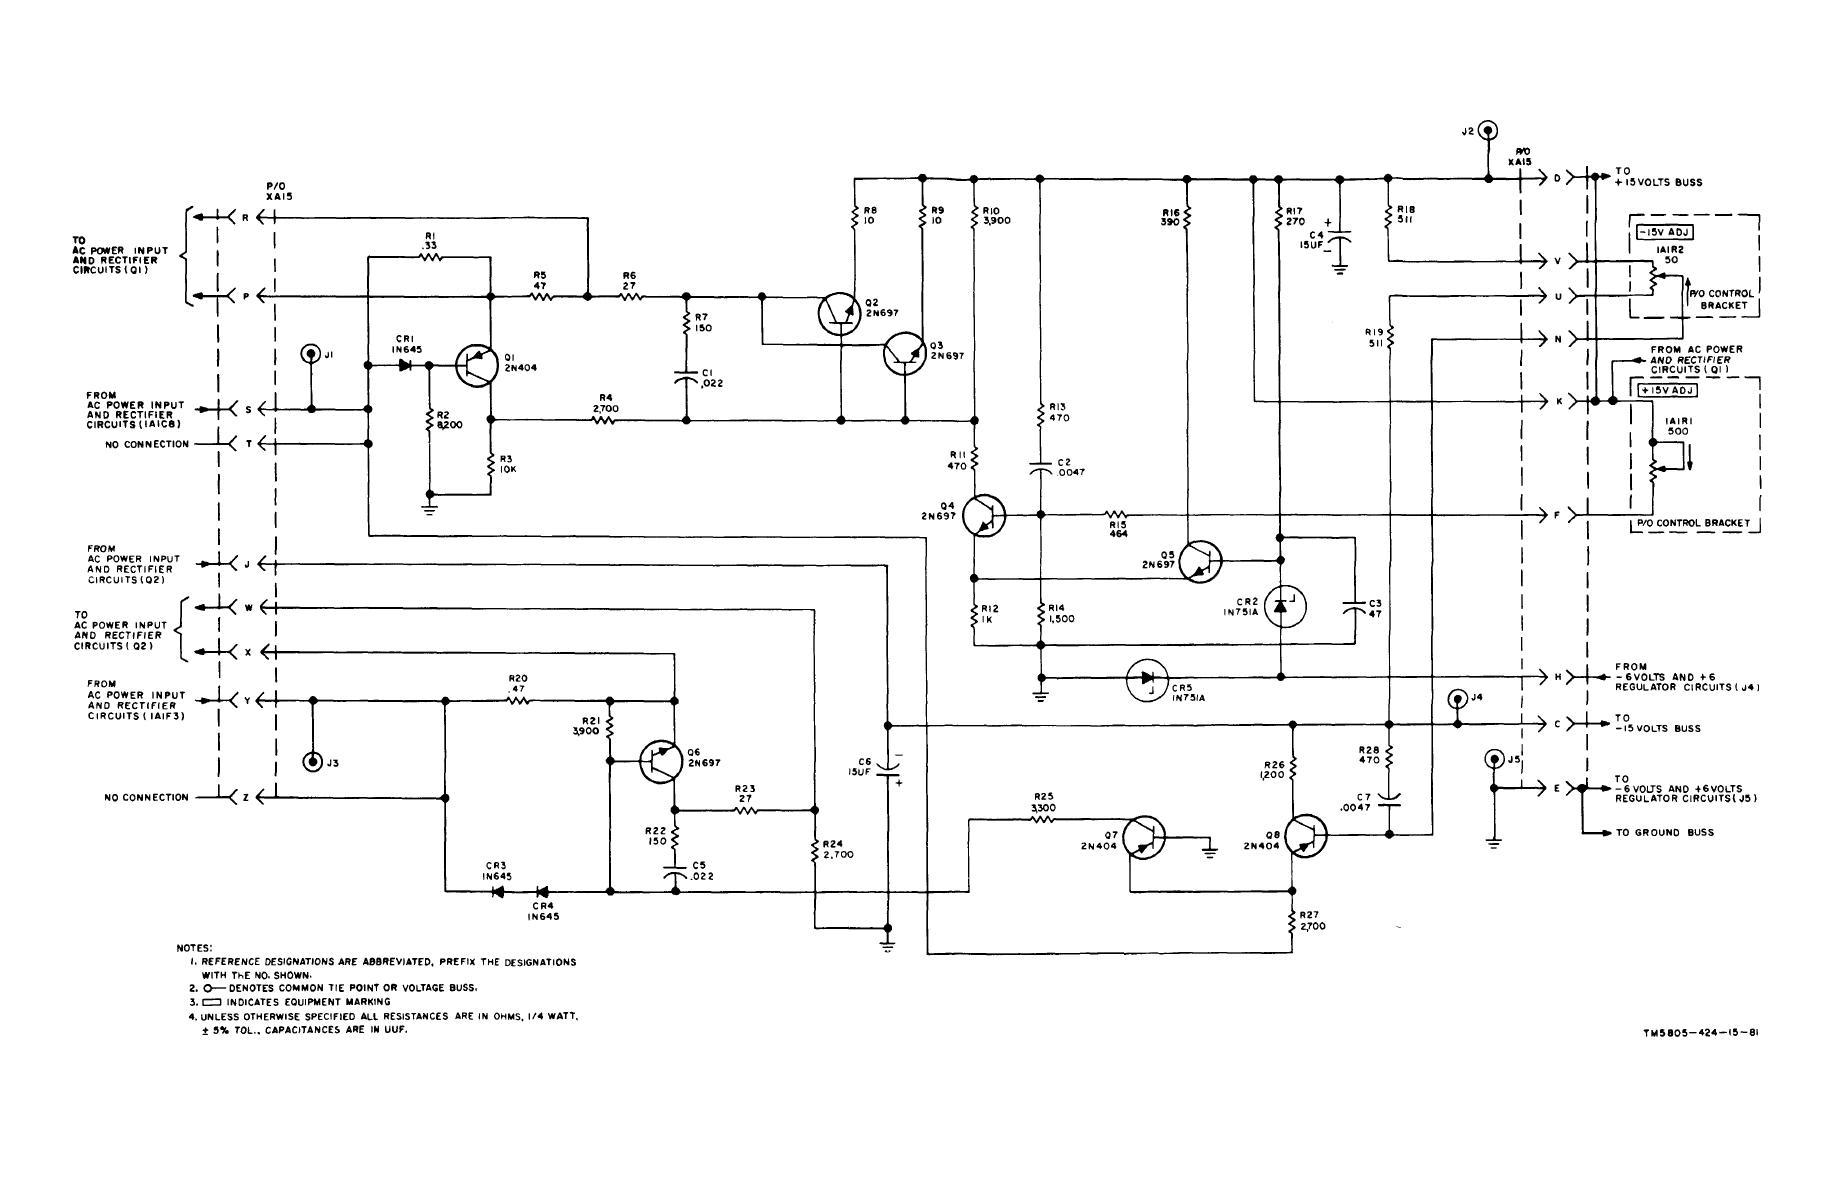 figure 8 19 15 volt power supply regulator circuits assembly a15 pc 80034160 schematic diagram